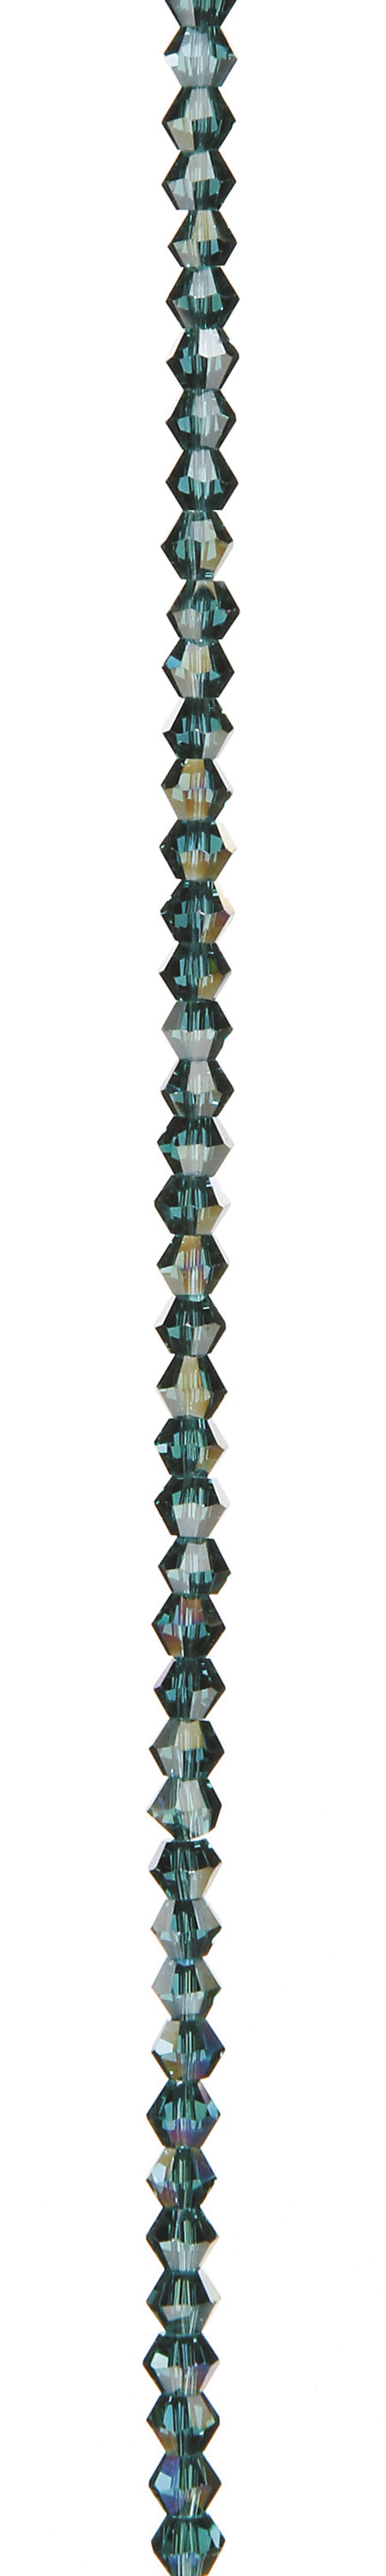 "7"" Bead Strands - Teal AB Crystal Bicones, 4mm"